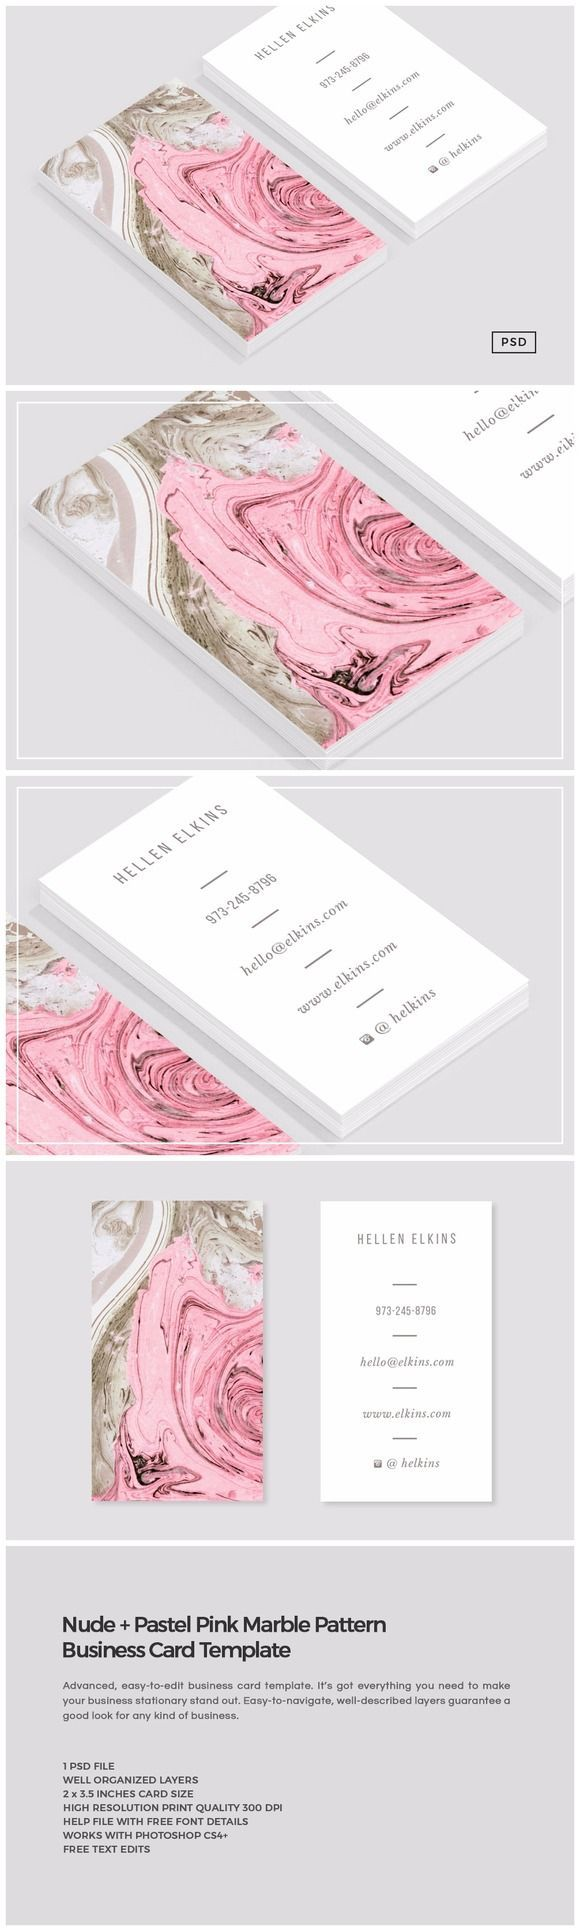 Nude + Pink Marble Business Card https://creativemarket.com/MeeraG/706535-Nude-Pink-Marble-Business-Card #design #art #graphicdesign. The UX Blog podcast is also available on iTunes.